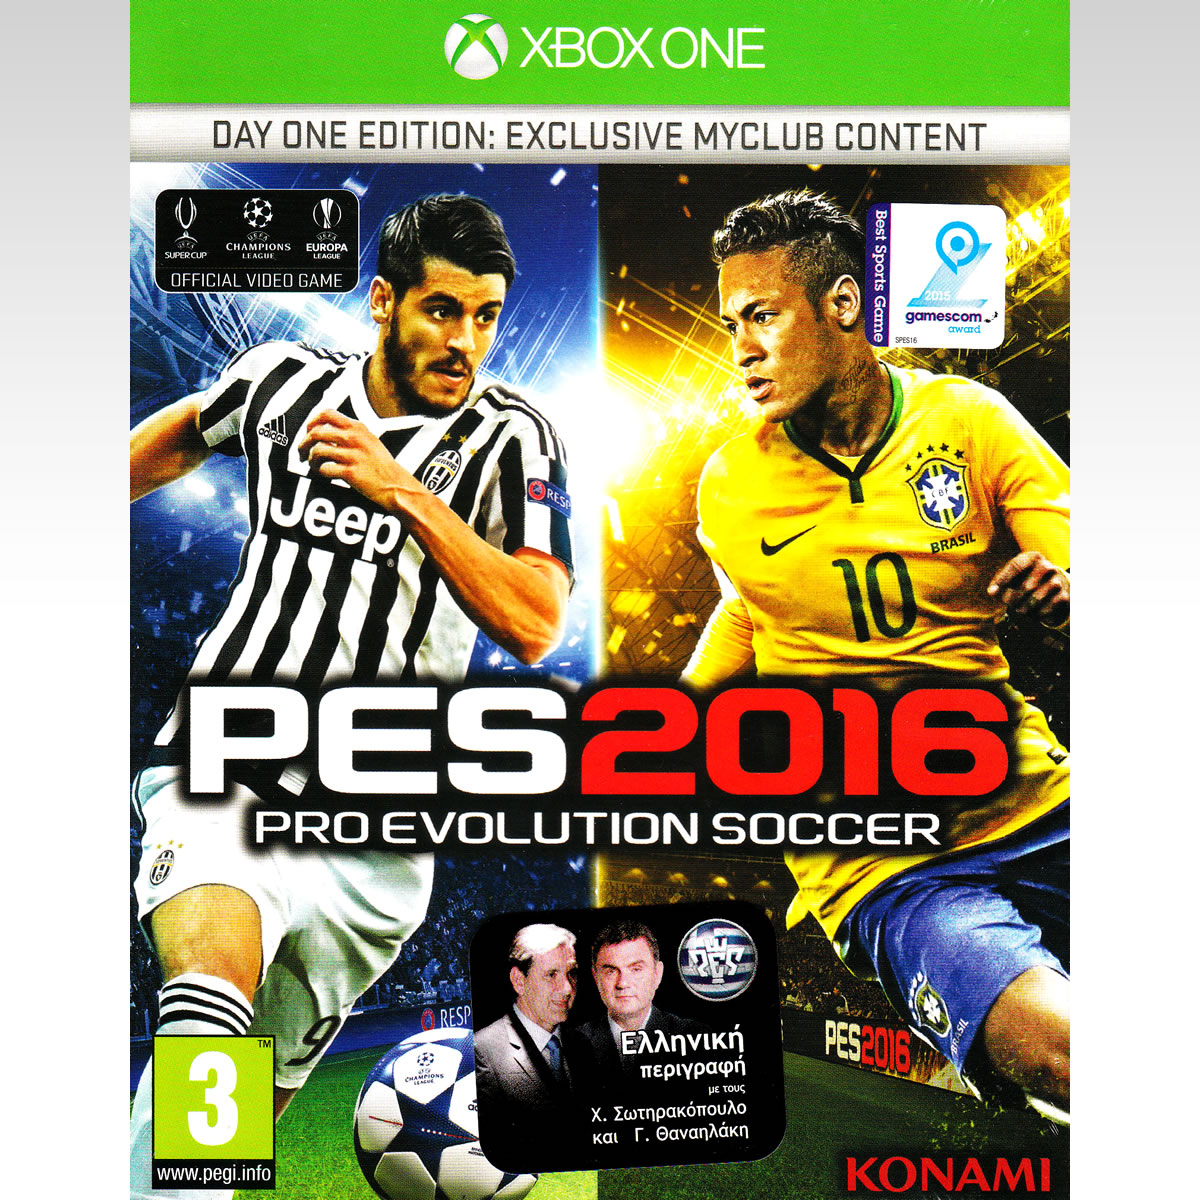 PRO EVOLUTION SOCCER 2016 [��������] - DAY 1 EDITION (XBOX ONE)